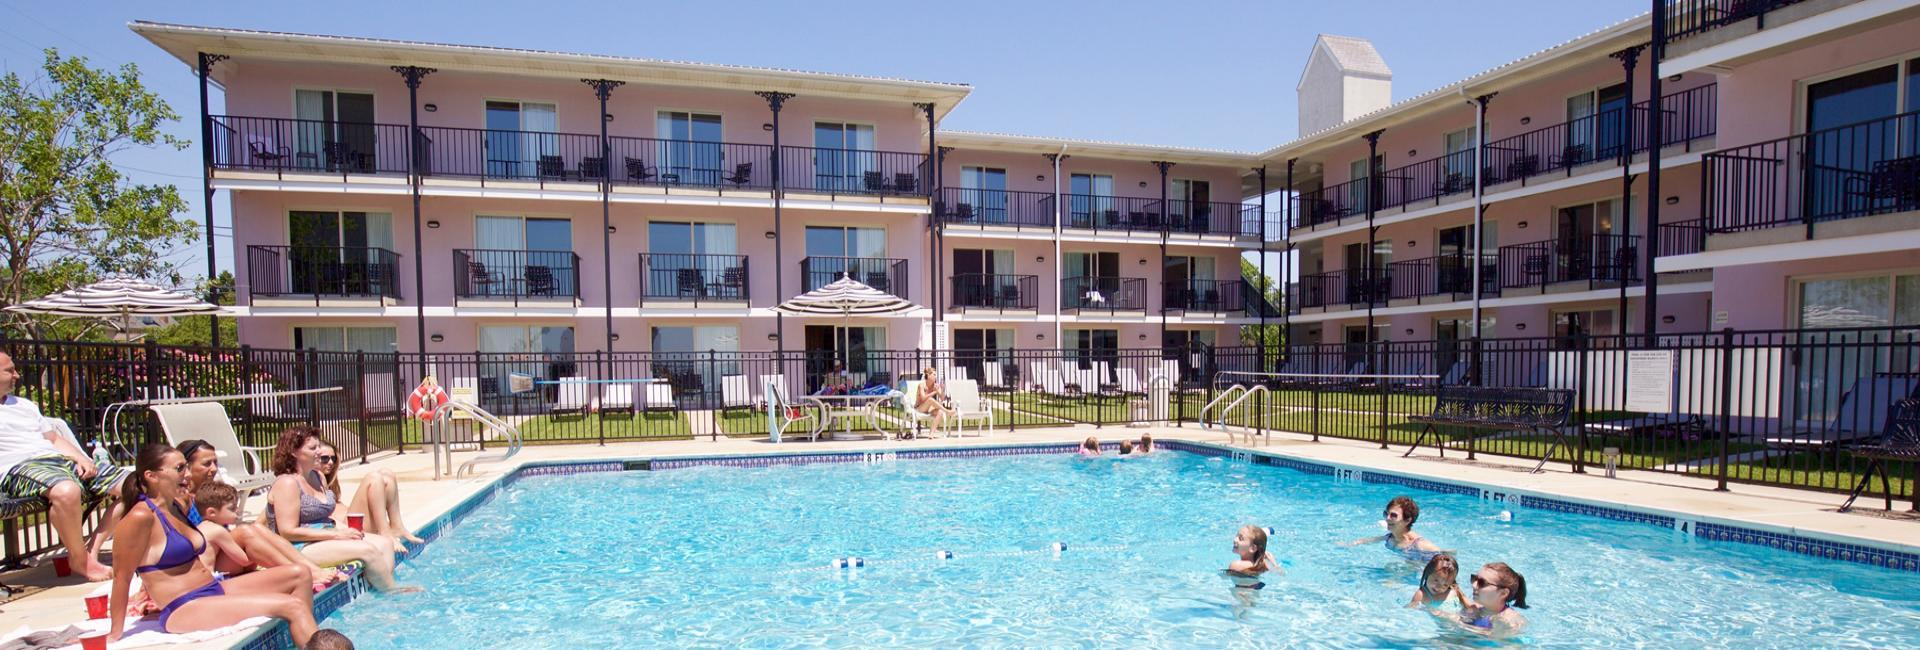 Cape May Hotels >> Periwinkle Inn Cape May Oceanfront Hotel Mobile